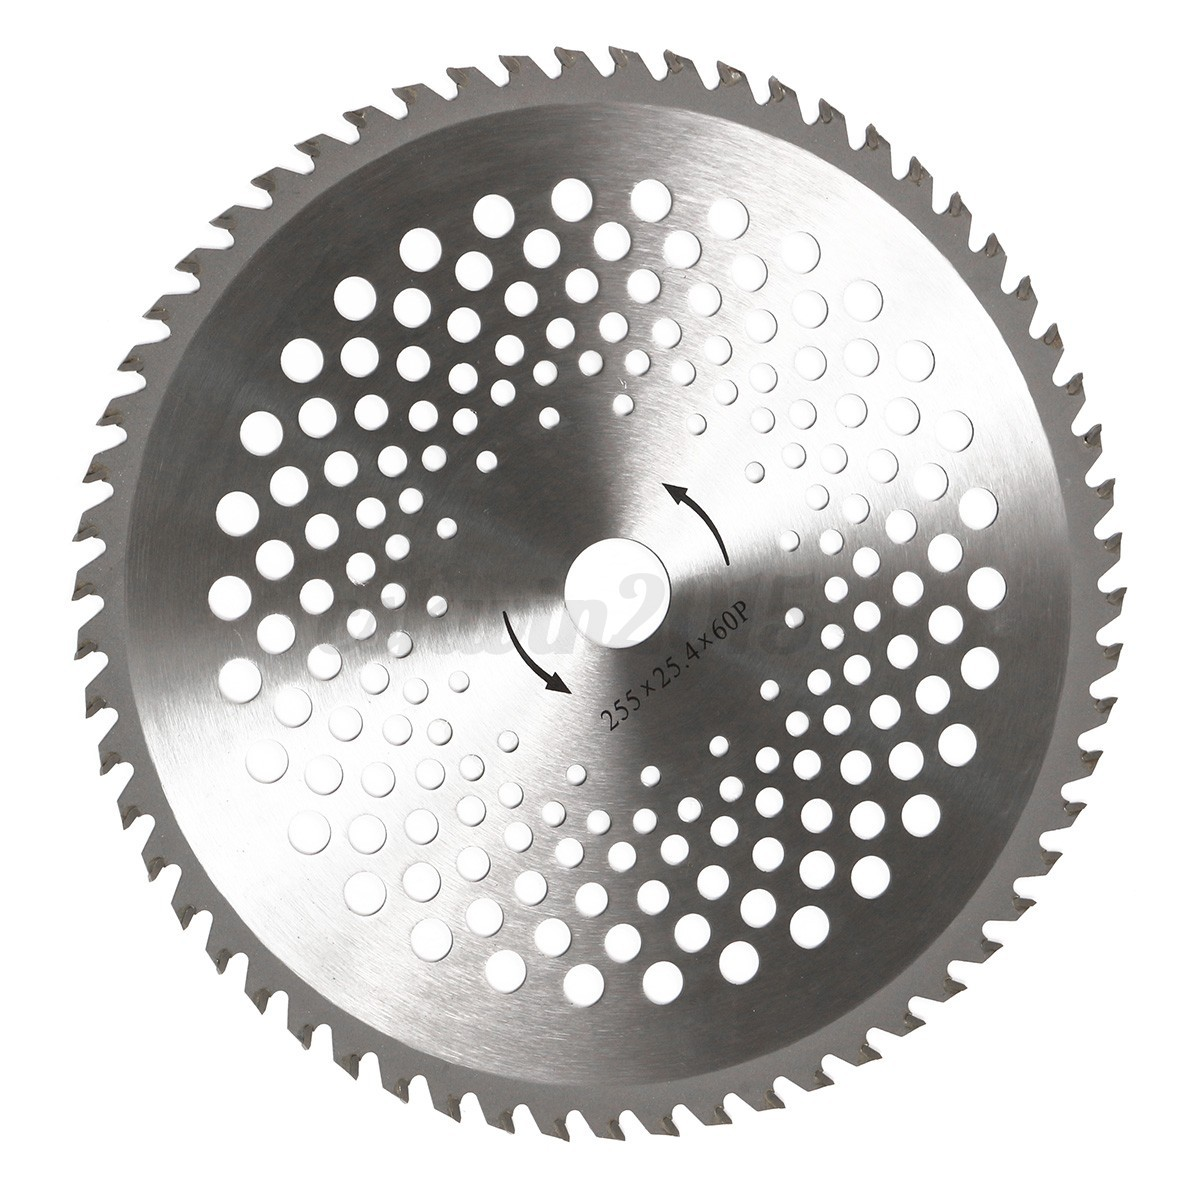 Brush Cutter Blade Strimmer Metal Disc 254mm 10/'/'   4  Tooth Strimmer Weed Tool